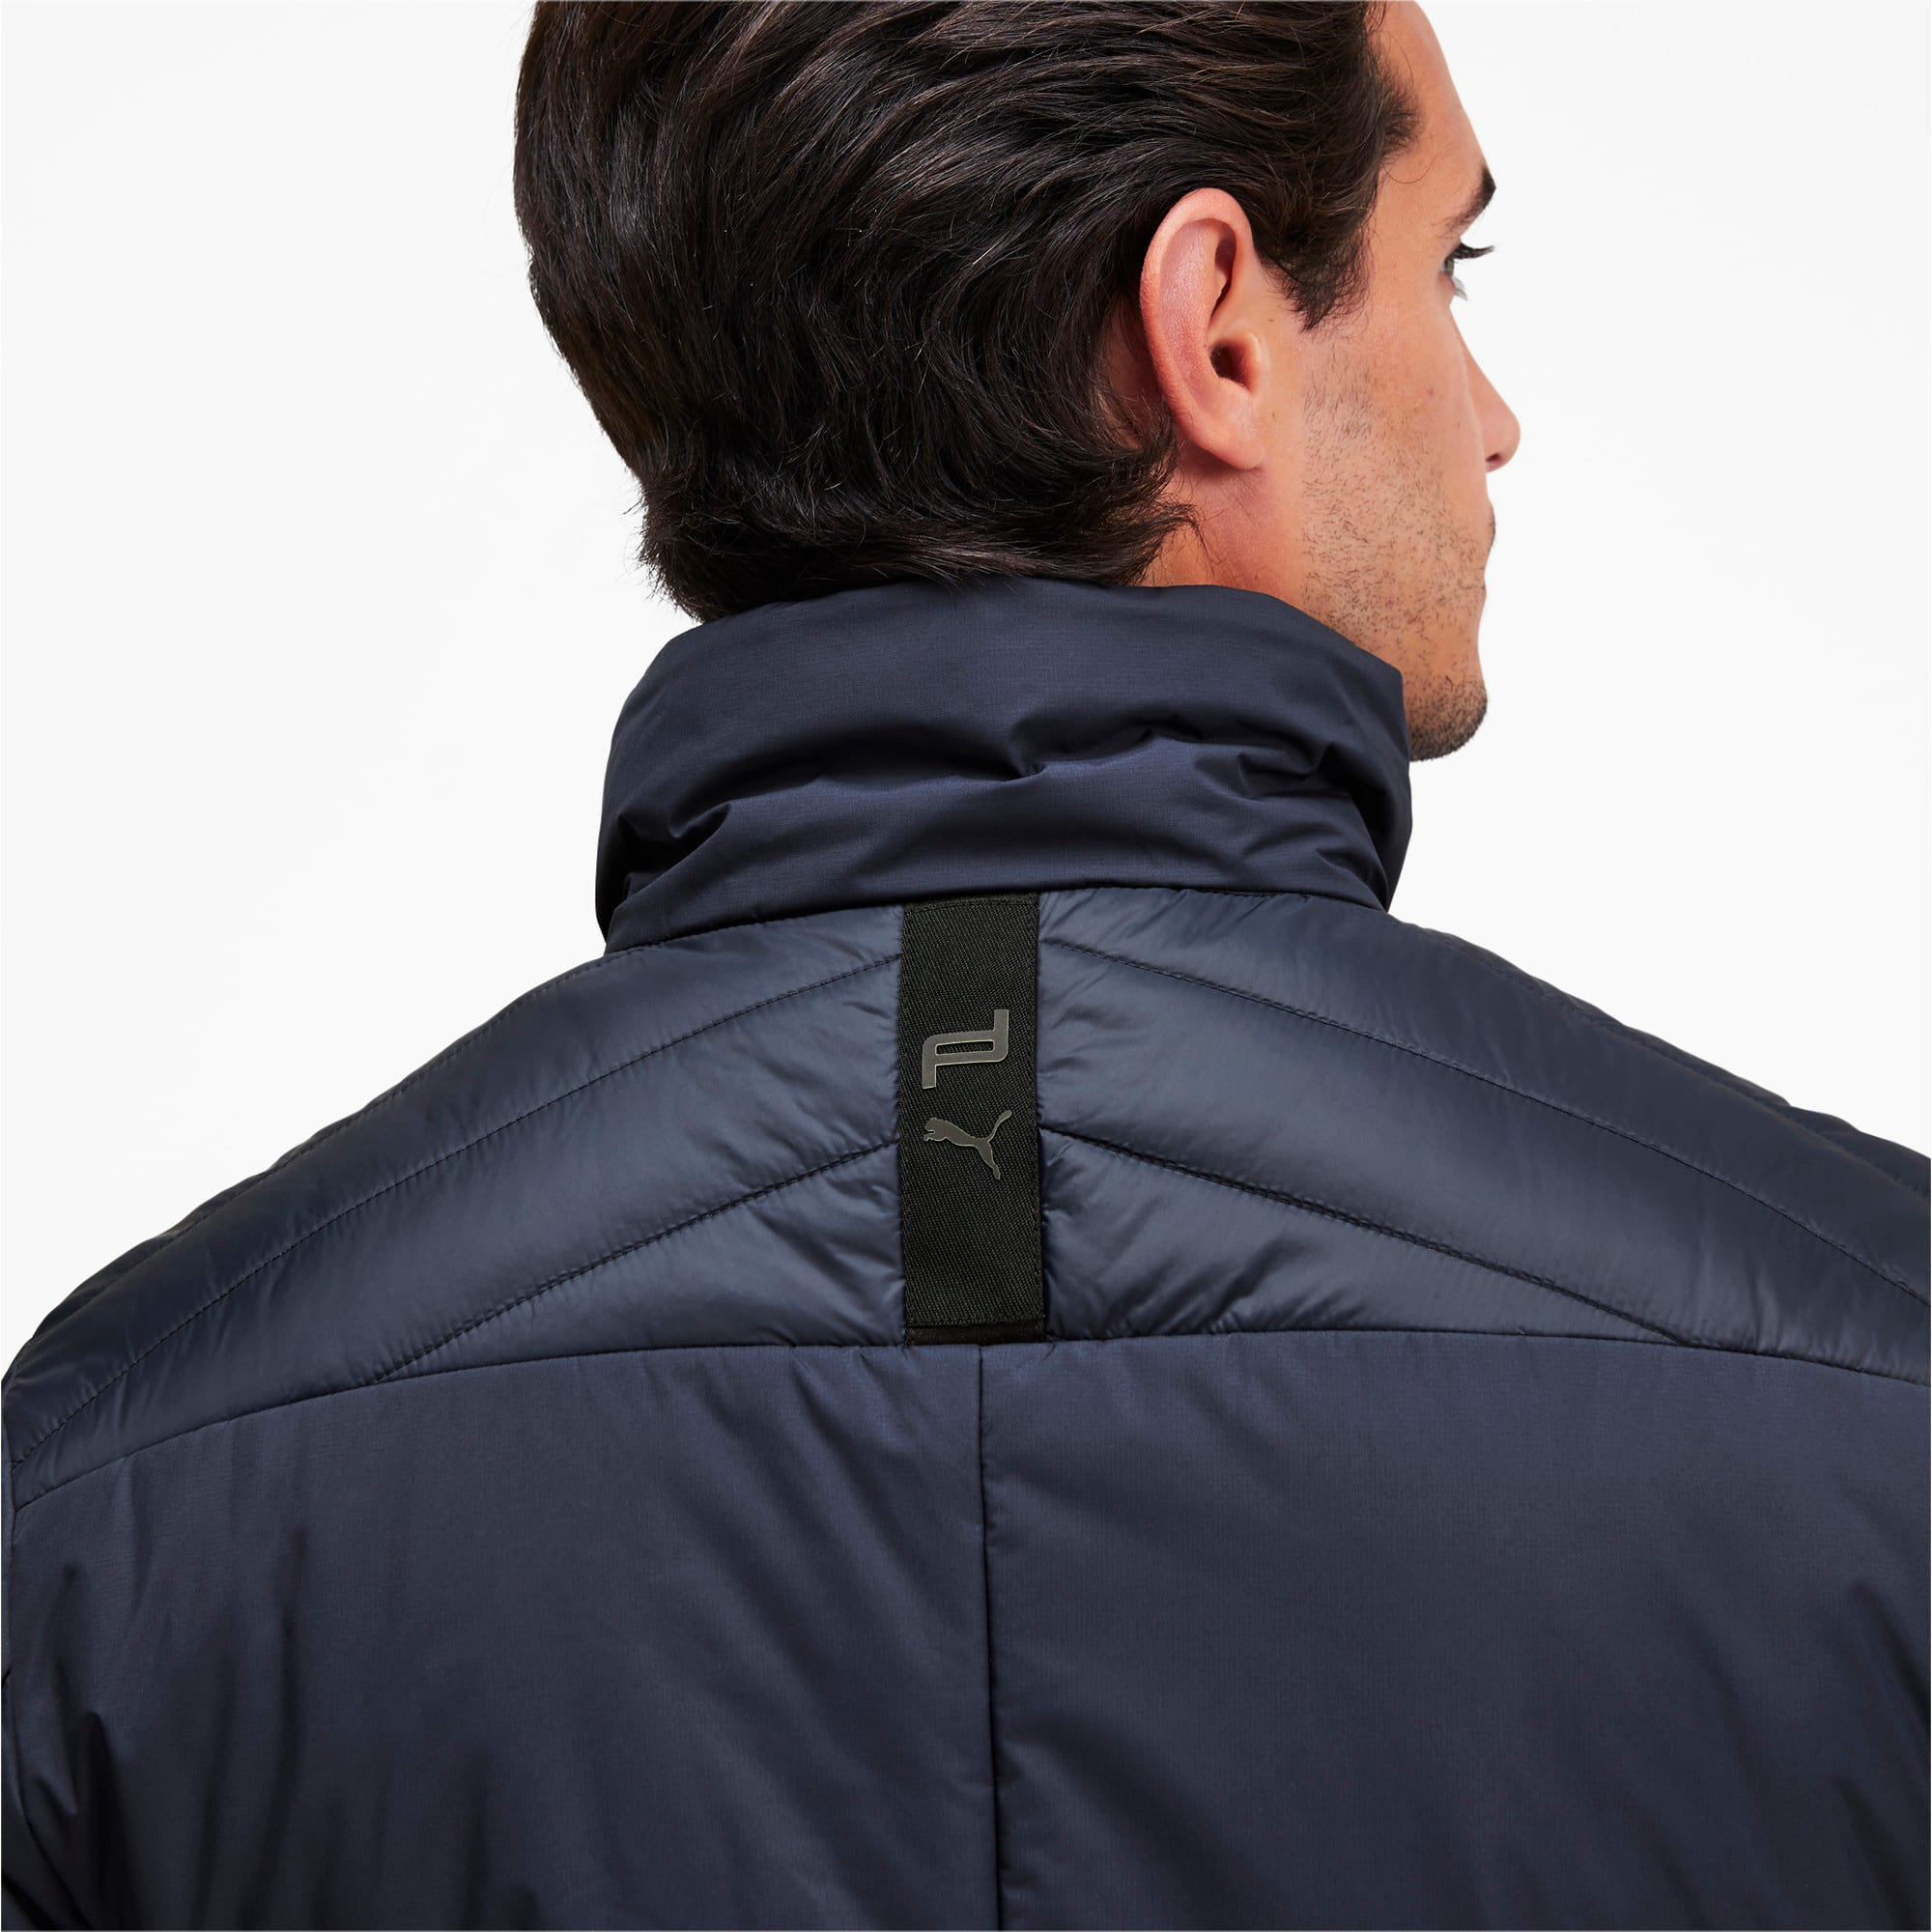 Thumbnail 7 of Porsche Design Men's Racing Jacket, Navy Blazer, medium